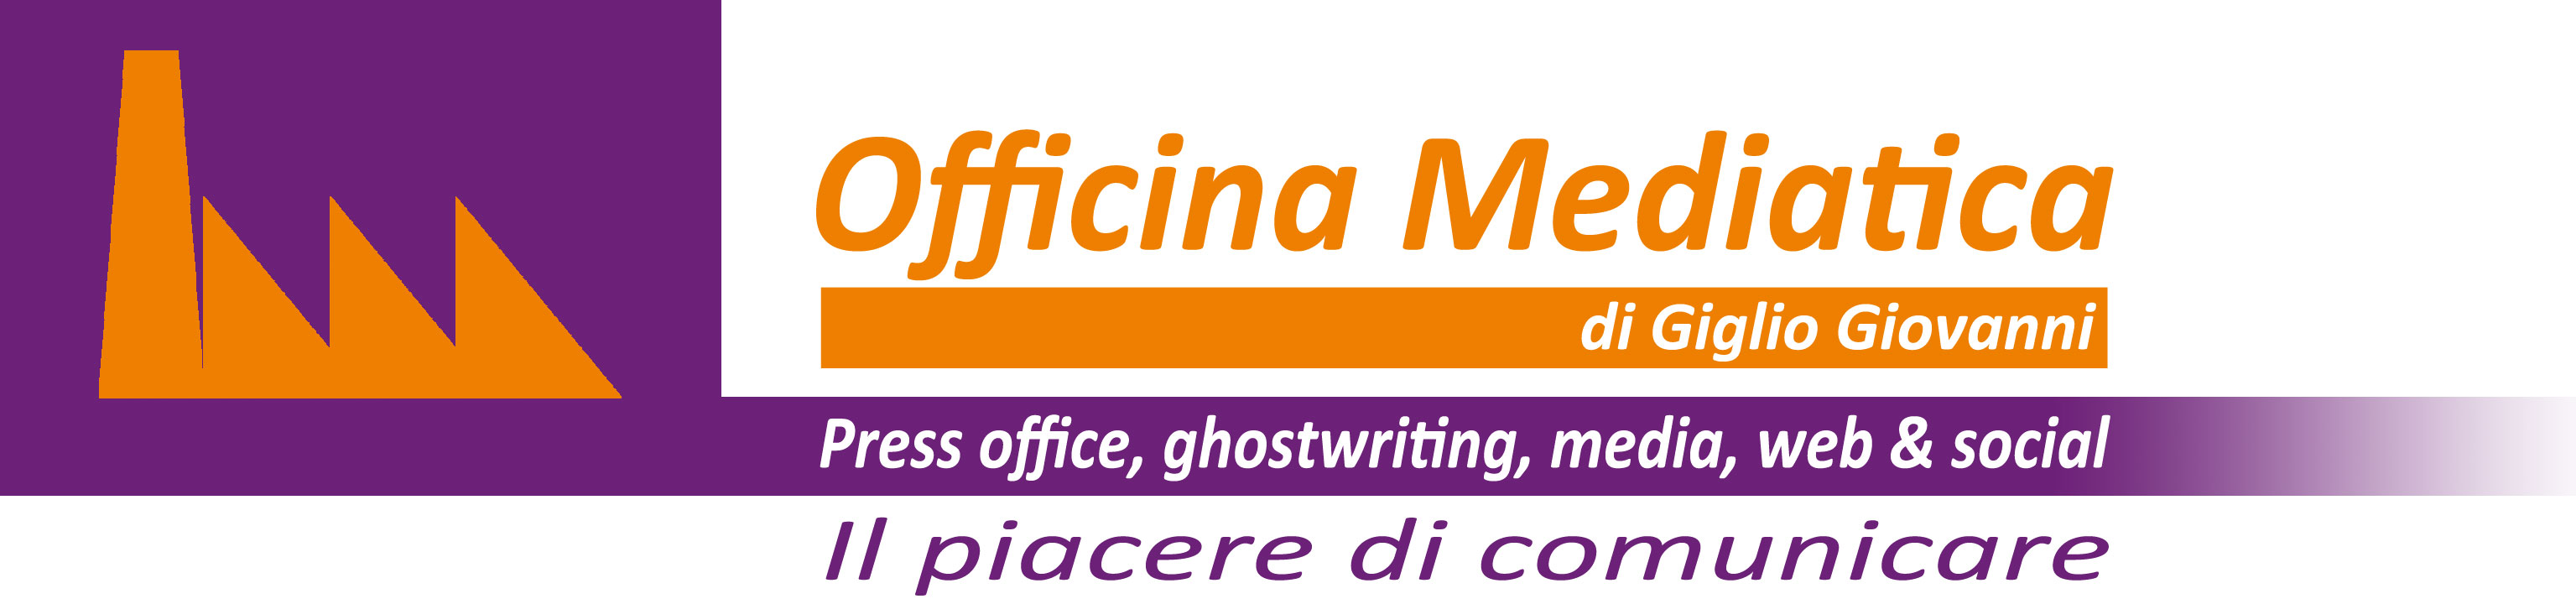 Officina Mediatica